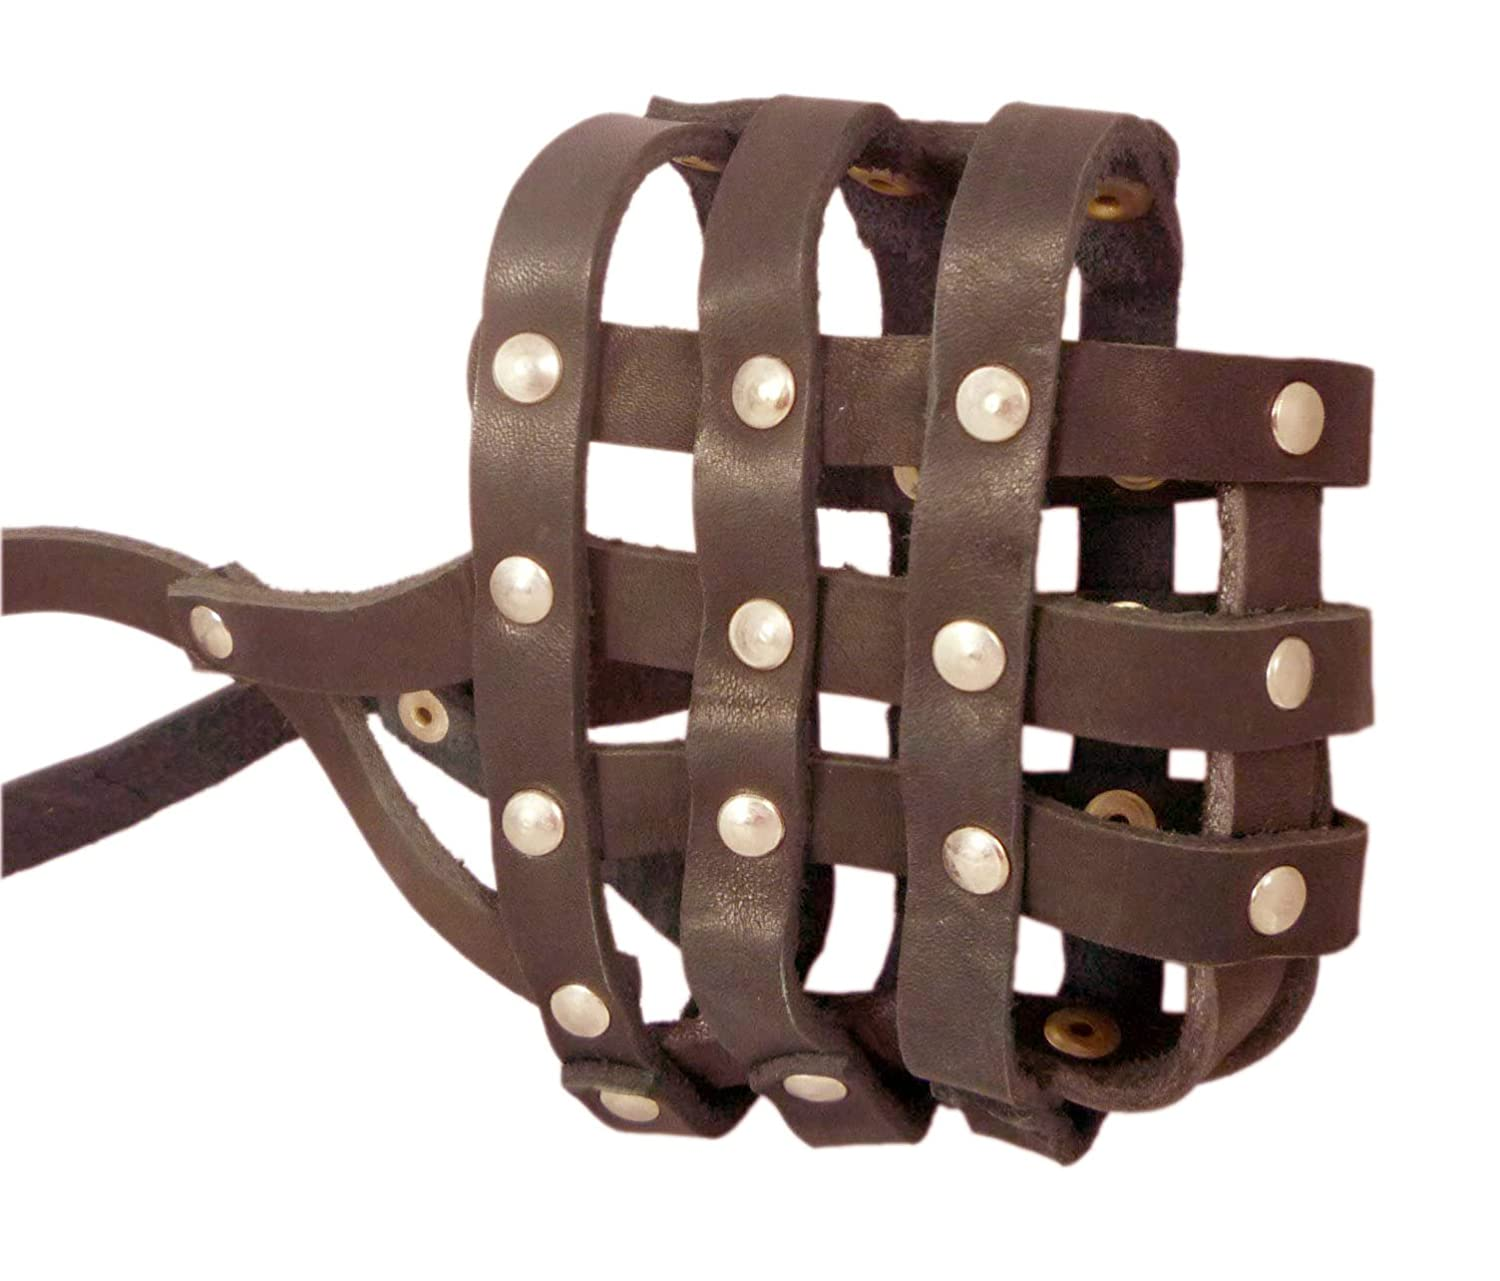 Real Leather Dog Basket Muzzle  107 Brown Pit Bull Amstaff (Circumference 12 Snout Length 3.5)